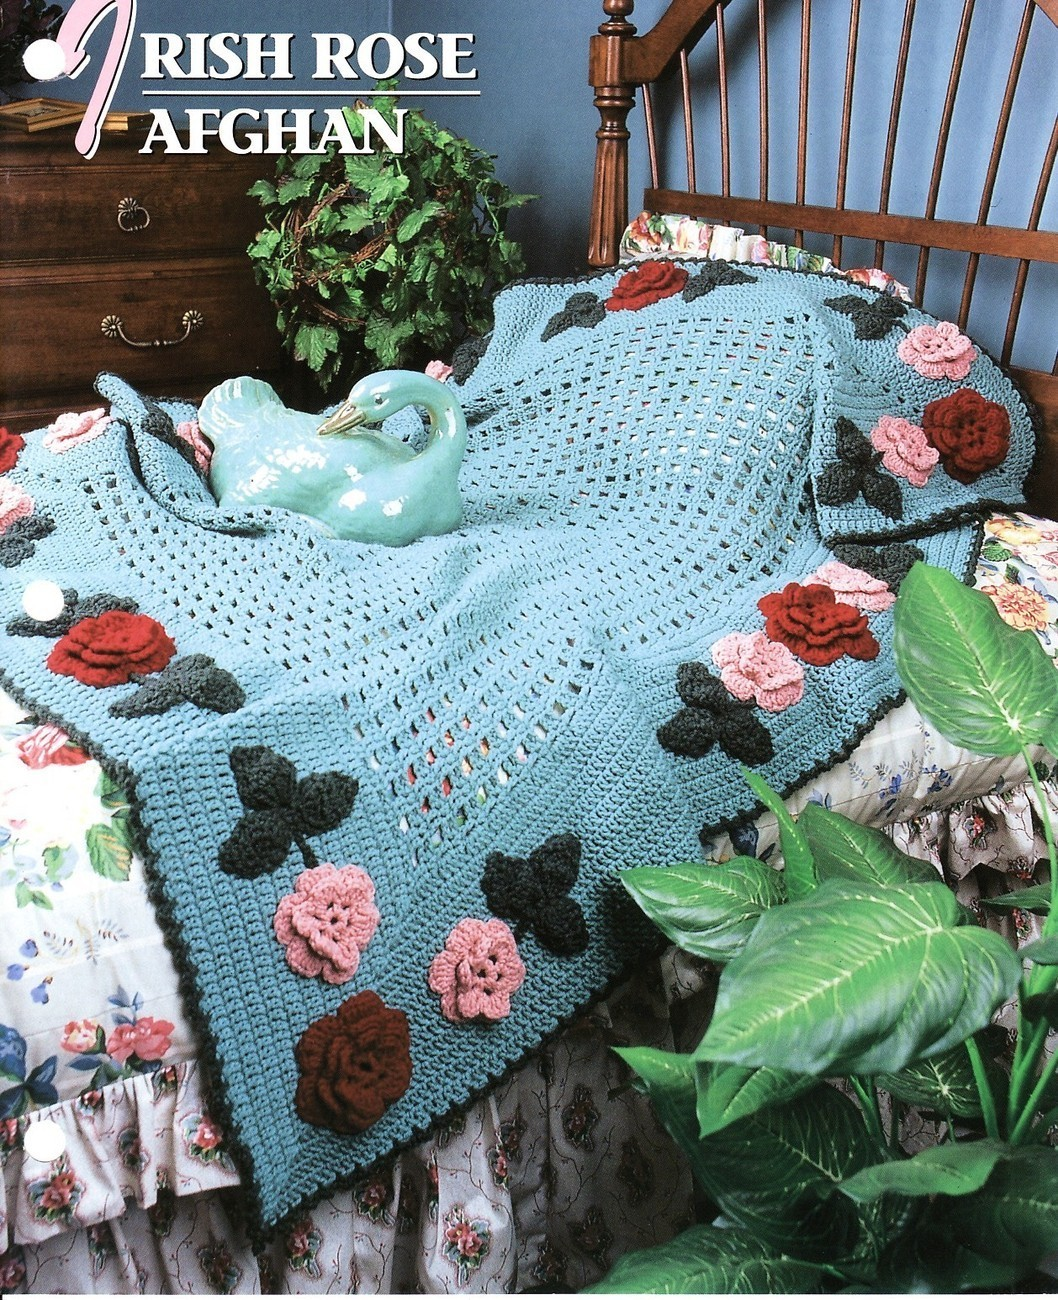 Crochet Pattern: Cabin Afghan - Associated Content from Yahoo